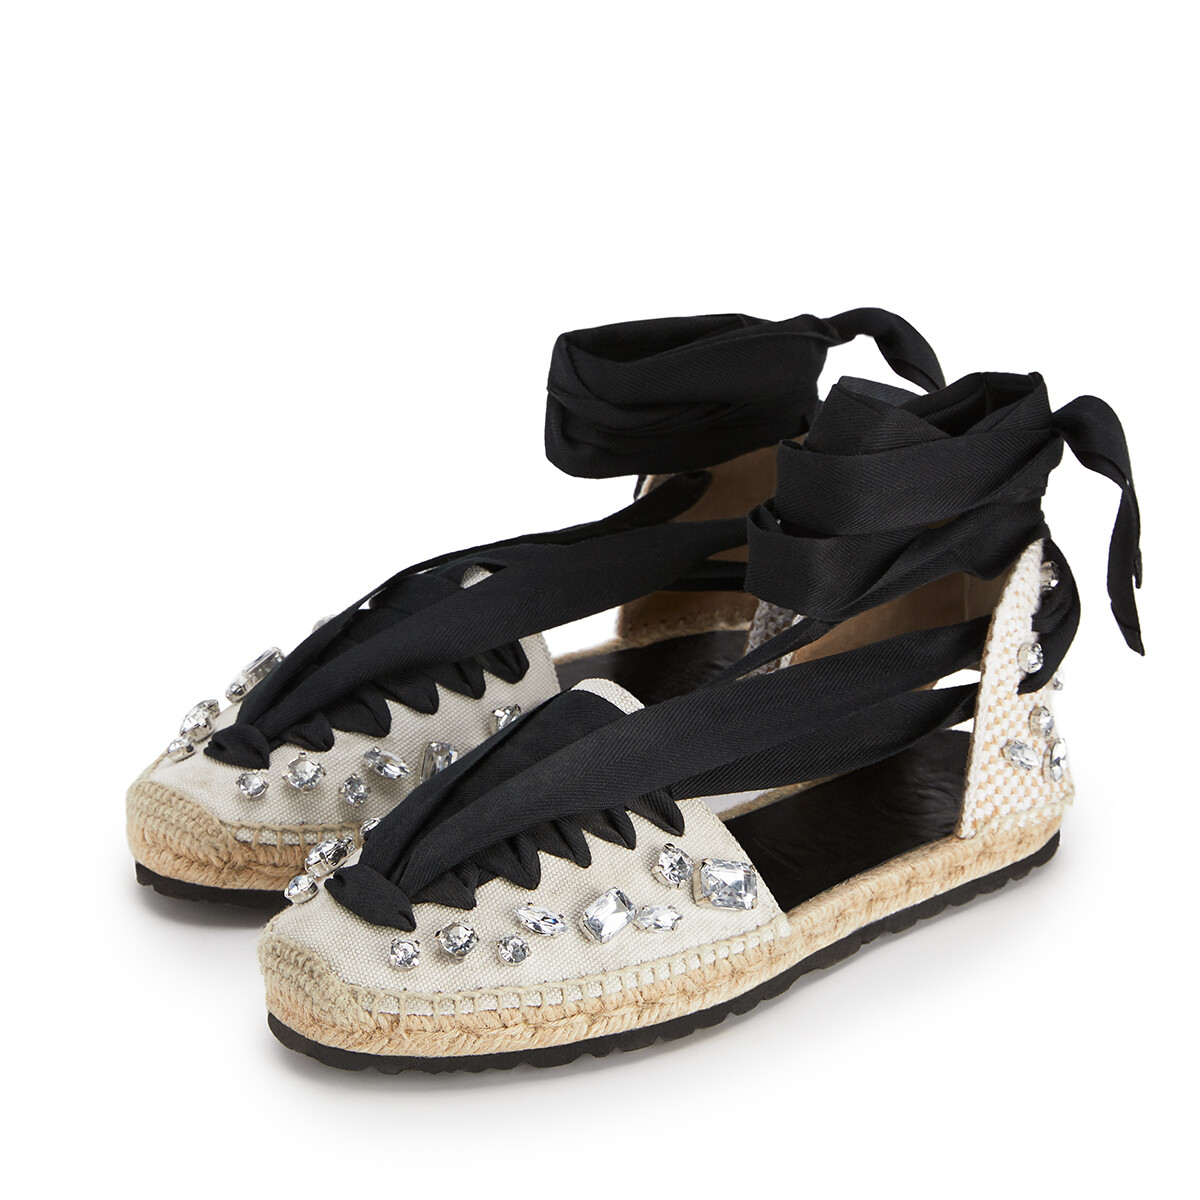 LOEWE Espadrille In Cotton Black/White front